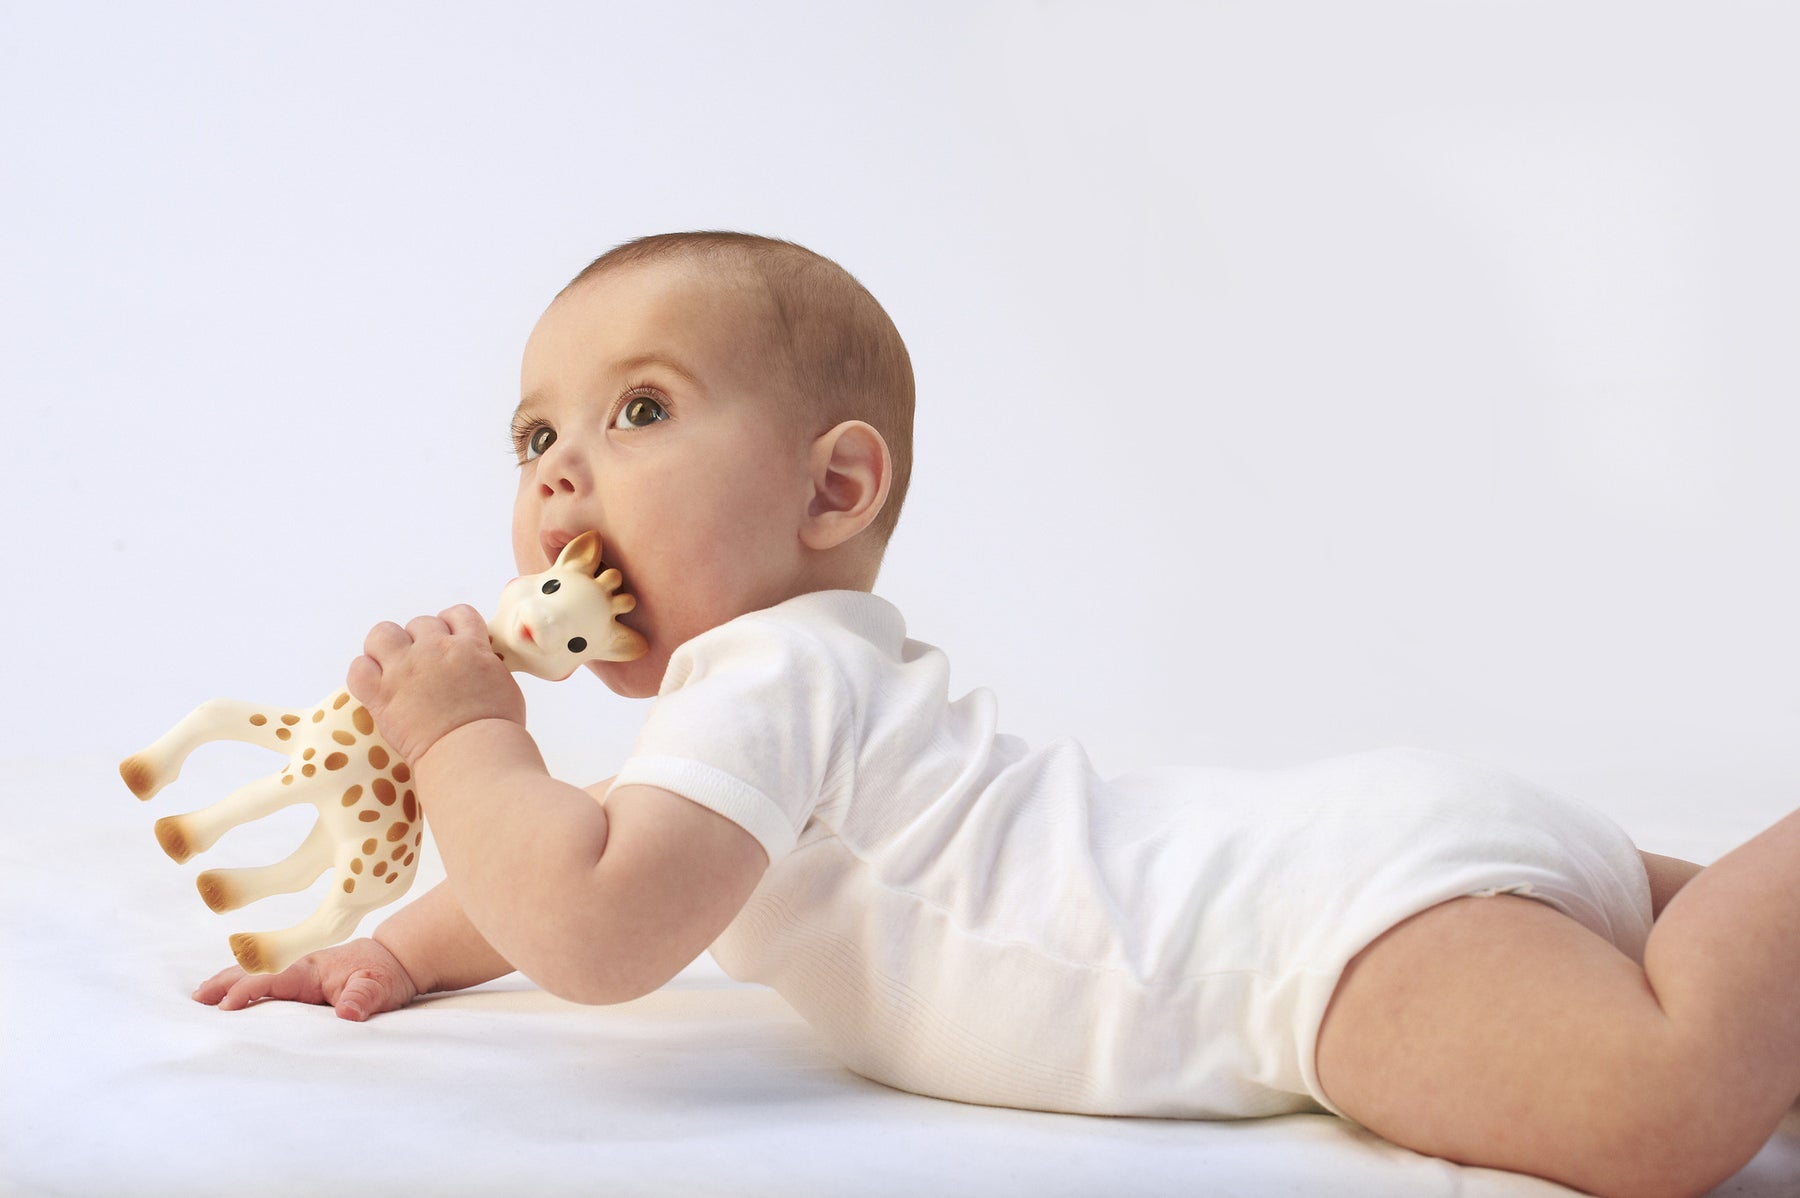 The Teether Review - Toofeze or Sophie the Giraffe?